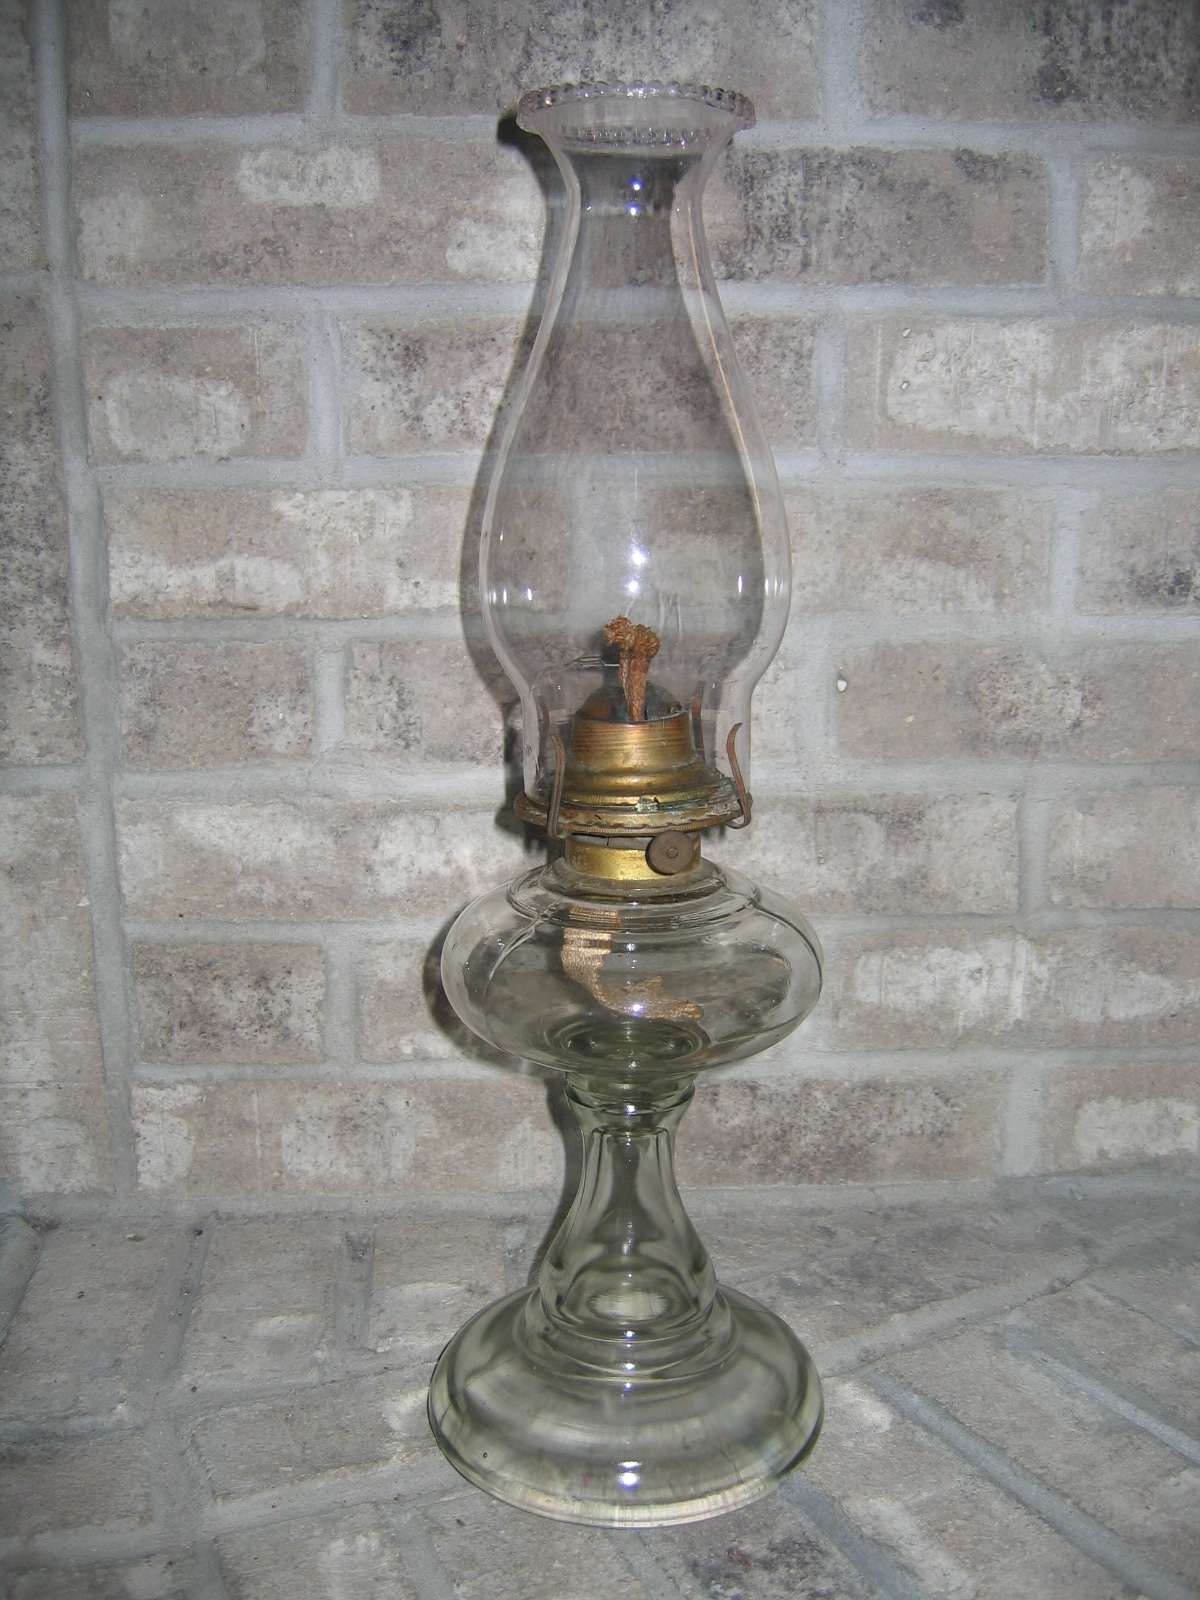 Antique Vintage Kerosene Glass Oil Lamp Lighting Item #906 For ...